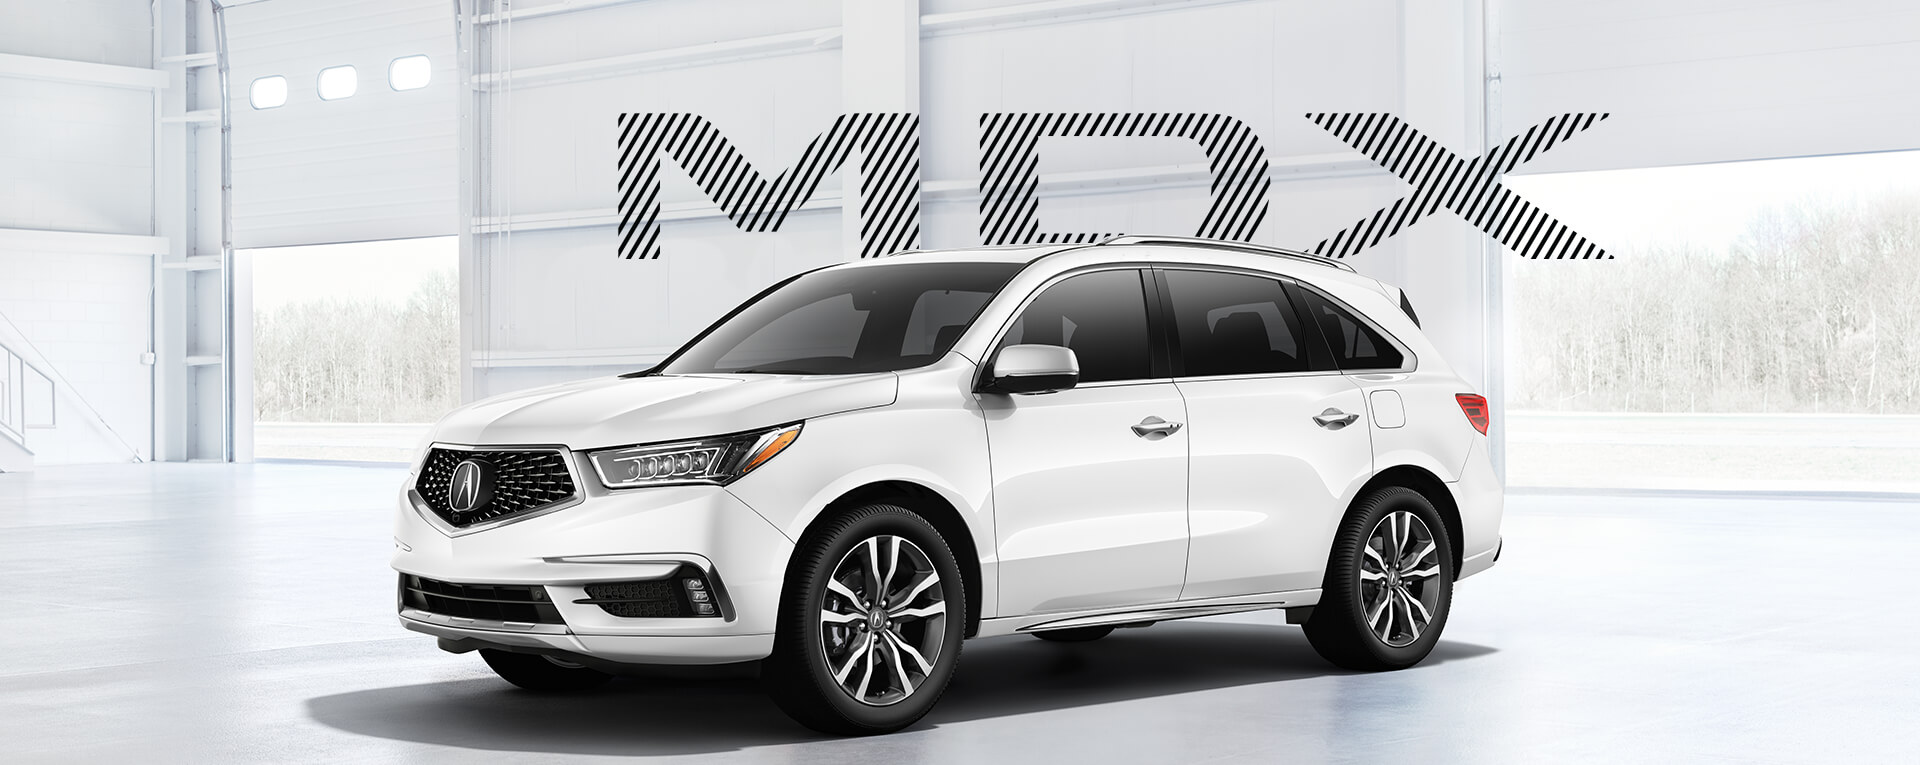 2020 Acura Mdx Socal Acura Dealers